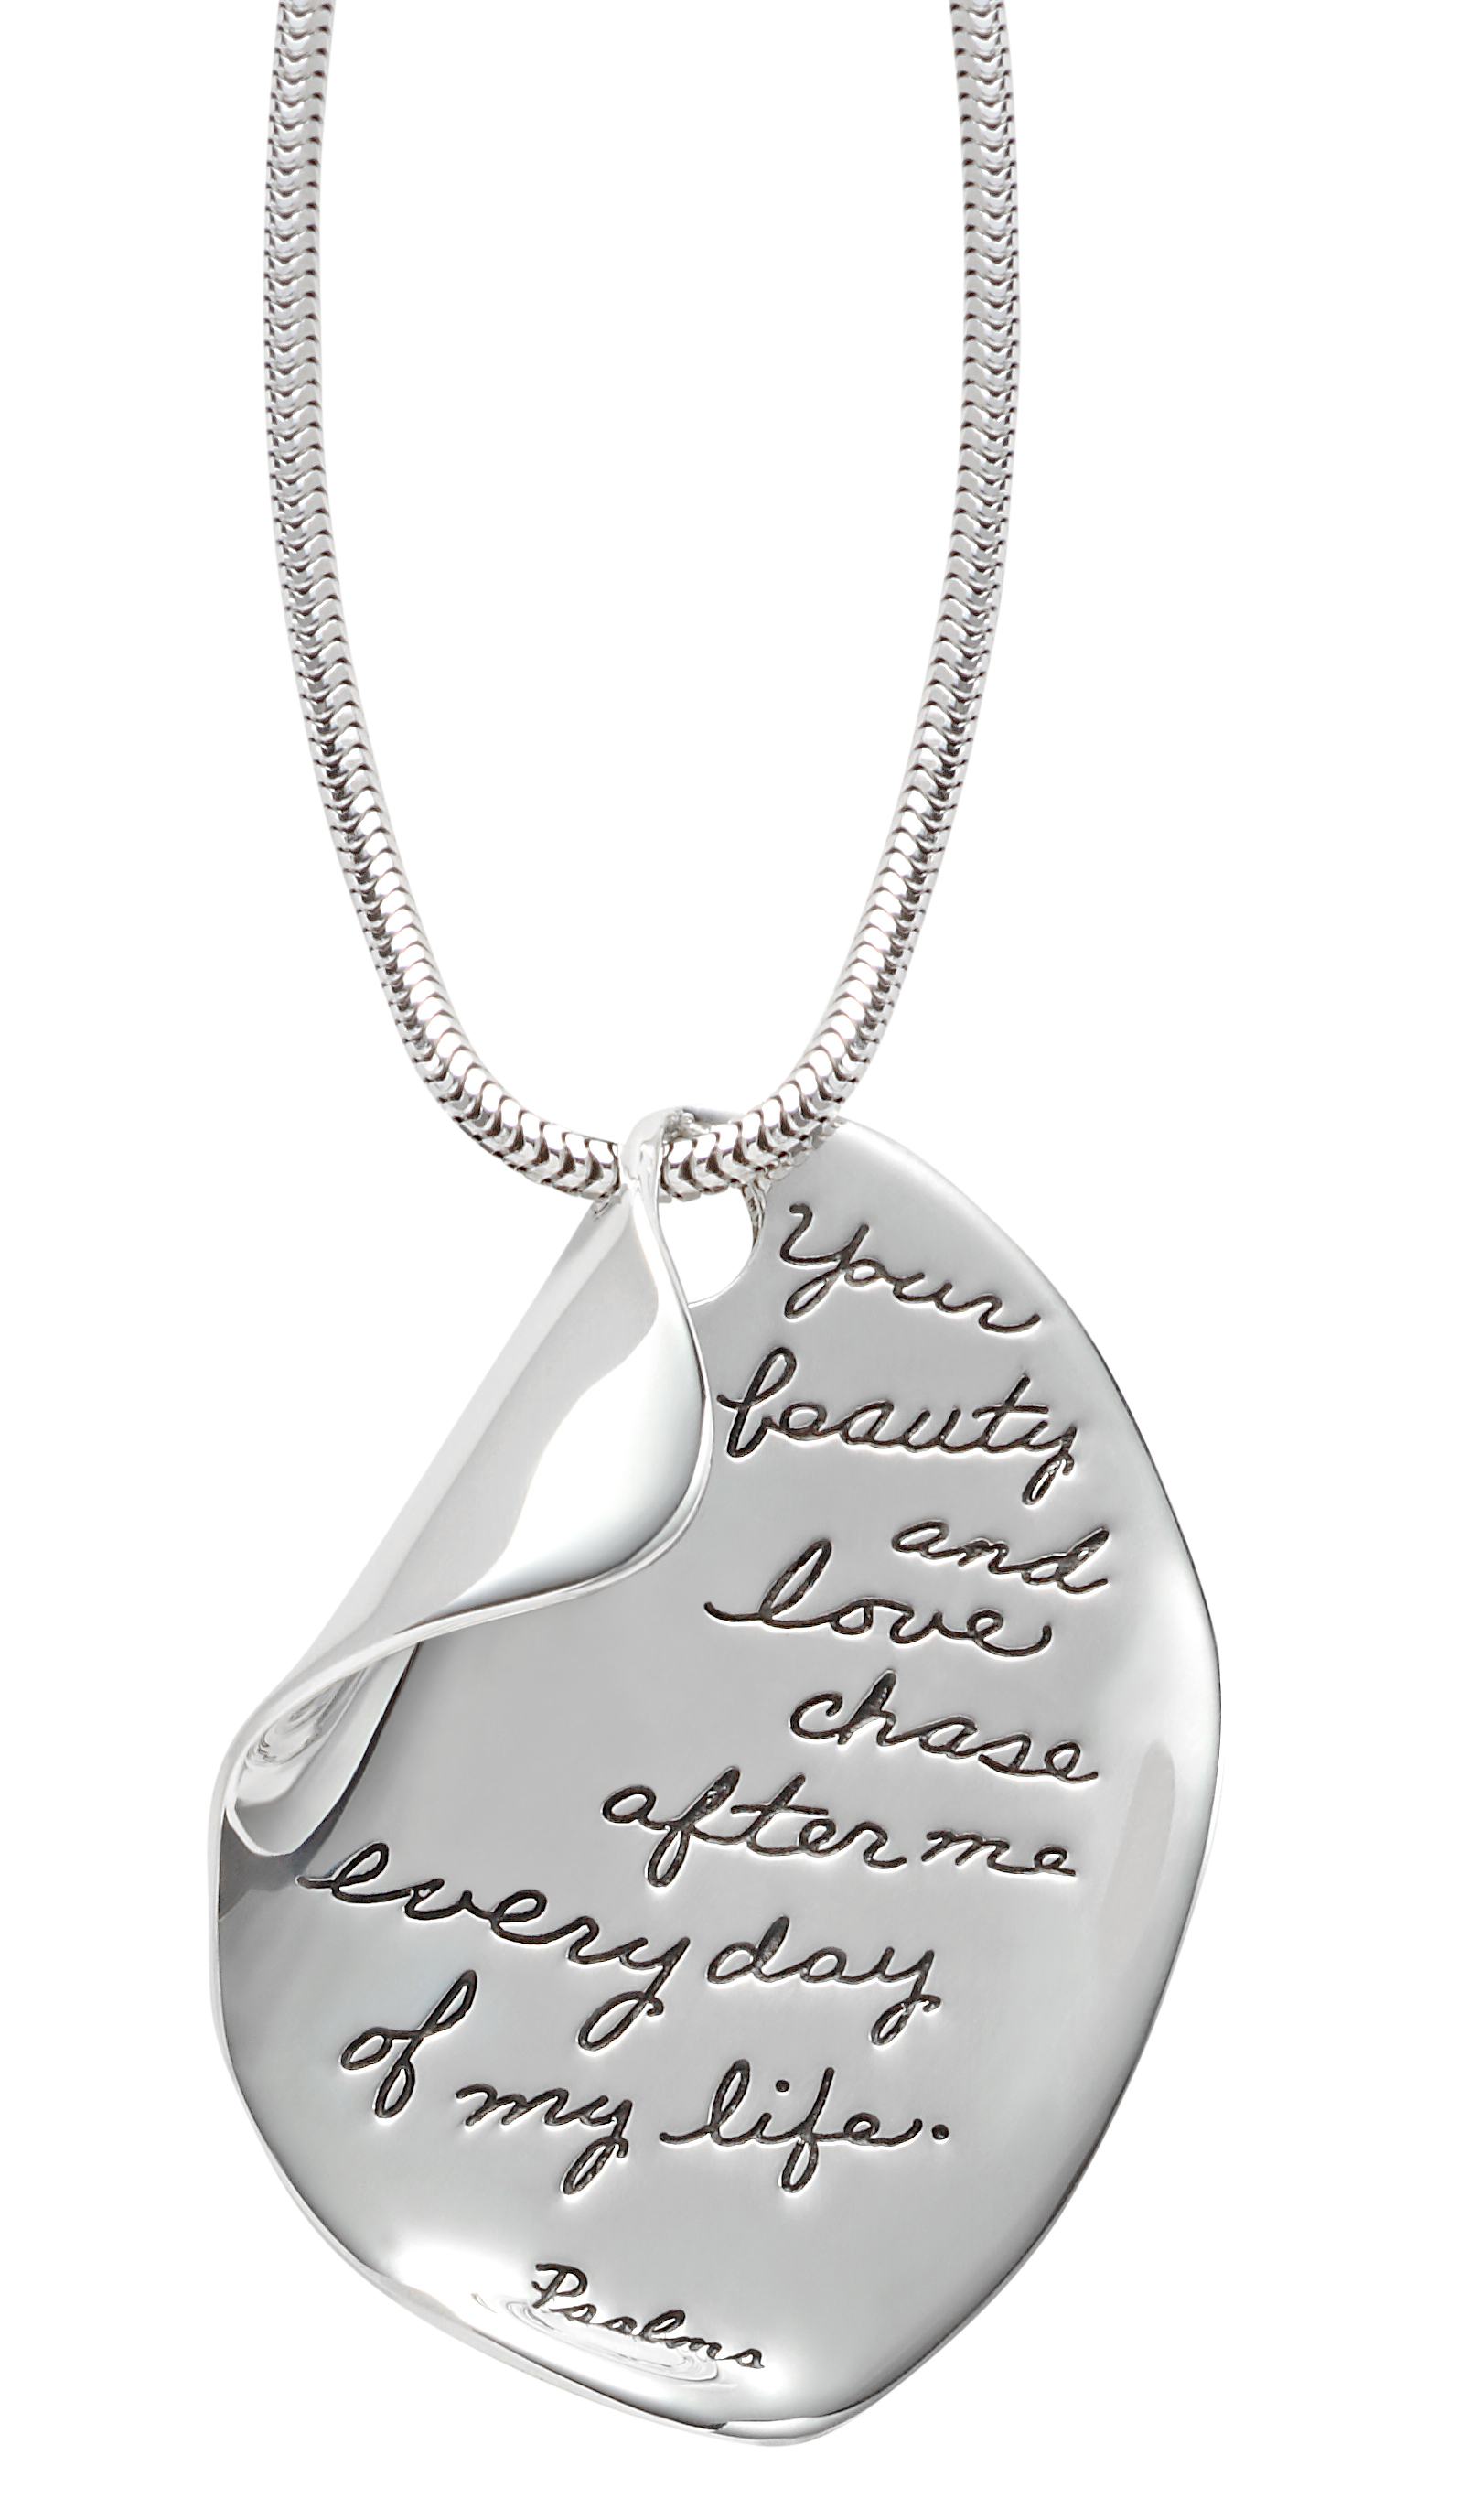 Sterling Silver bashful pendant Irregular oval shape with top right corner folded in. Inspirational engraved quote: Your beauty and love chase after me every day of my life.